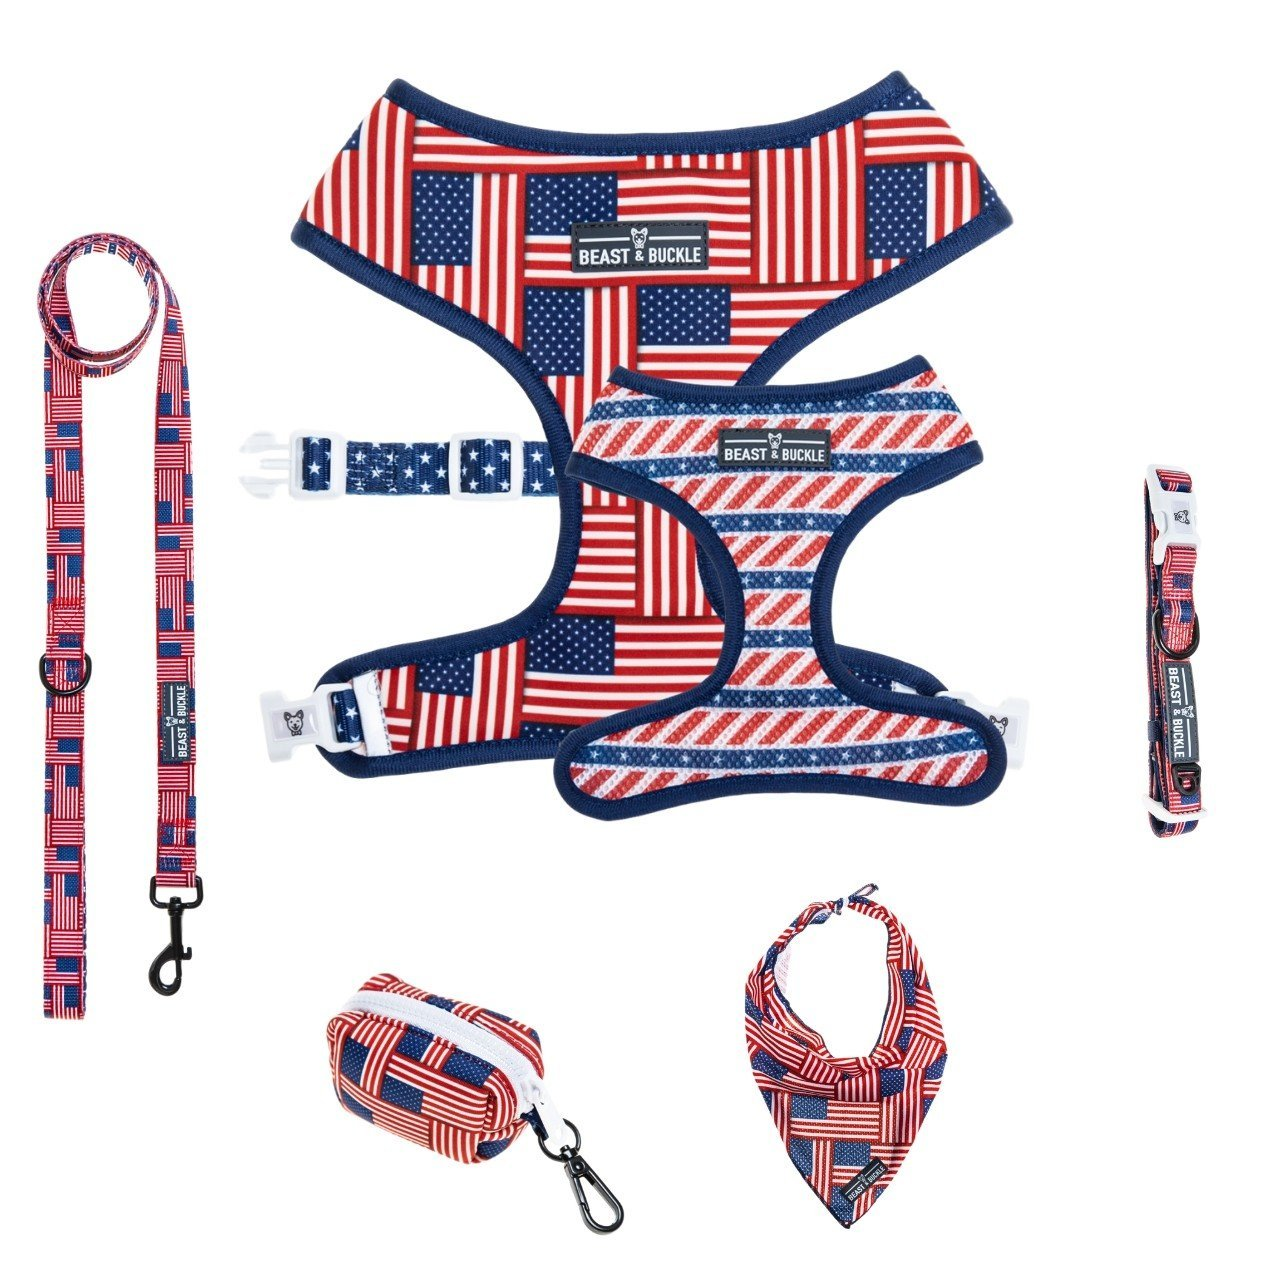 USA Harness Collection Bundle - Beast & Buckle